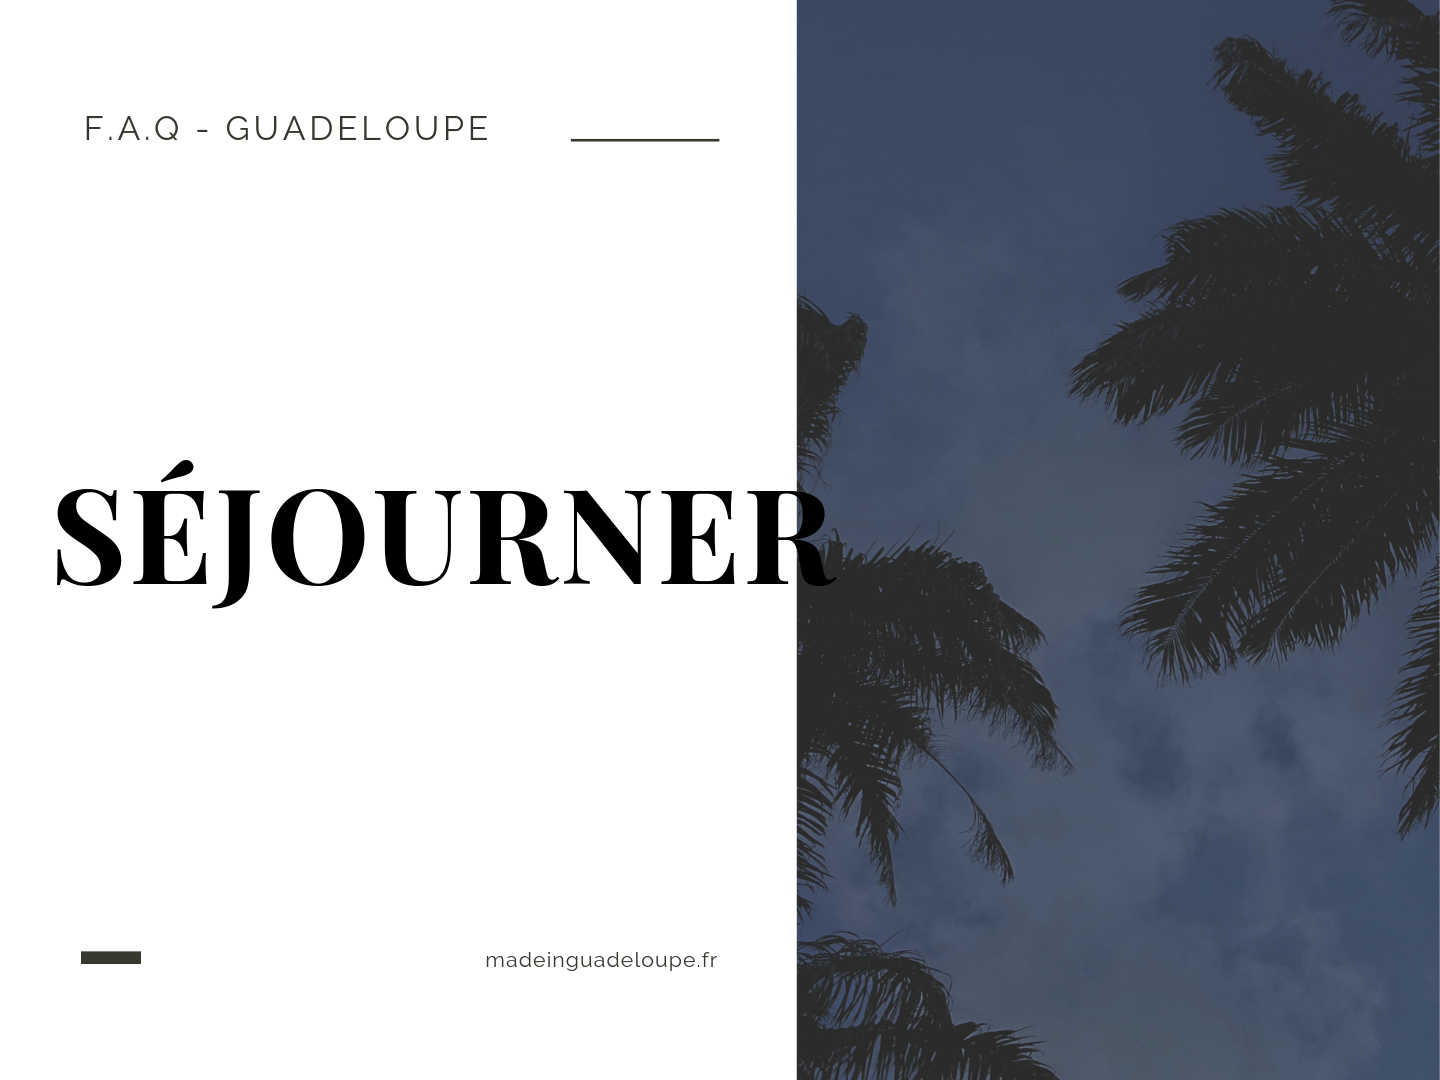 foire aux questions faq guadeloupe généralités y séjourner la vie quotidienne question reponse q and a answer daily life island nice stay vacations holidays general global google trends tourists caribbean